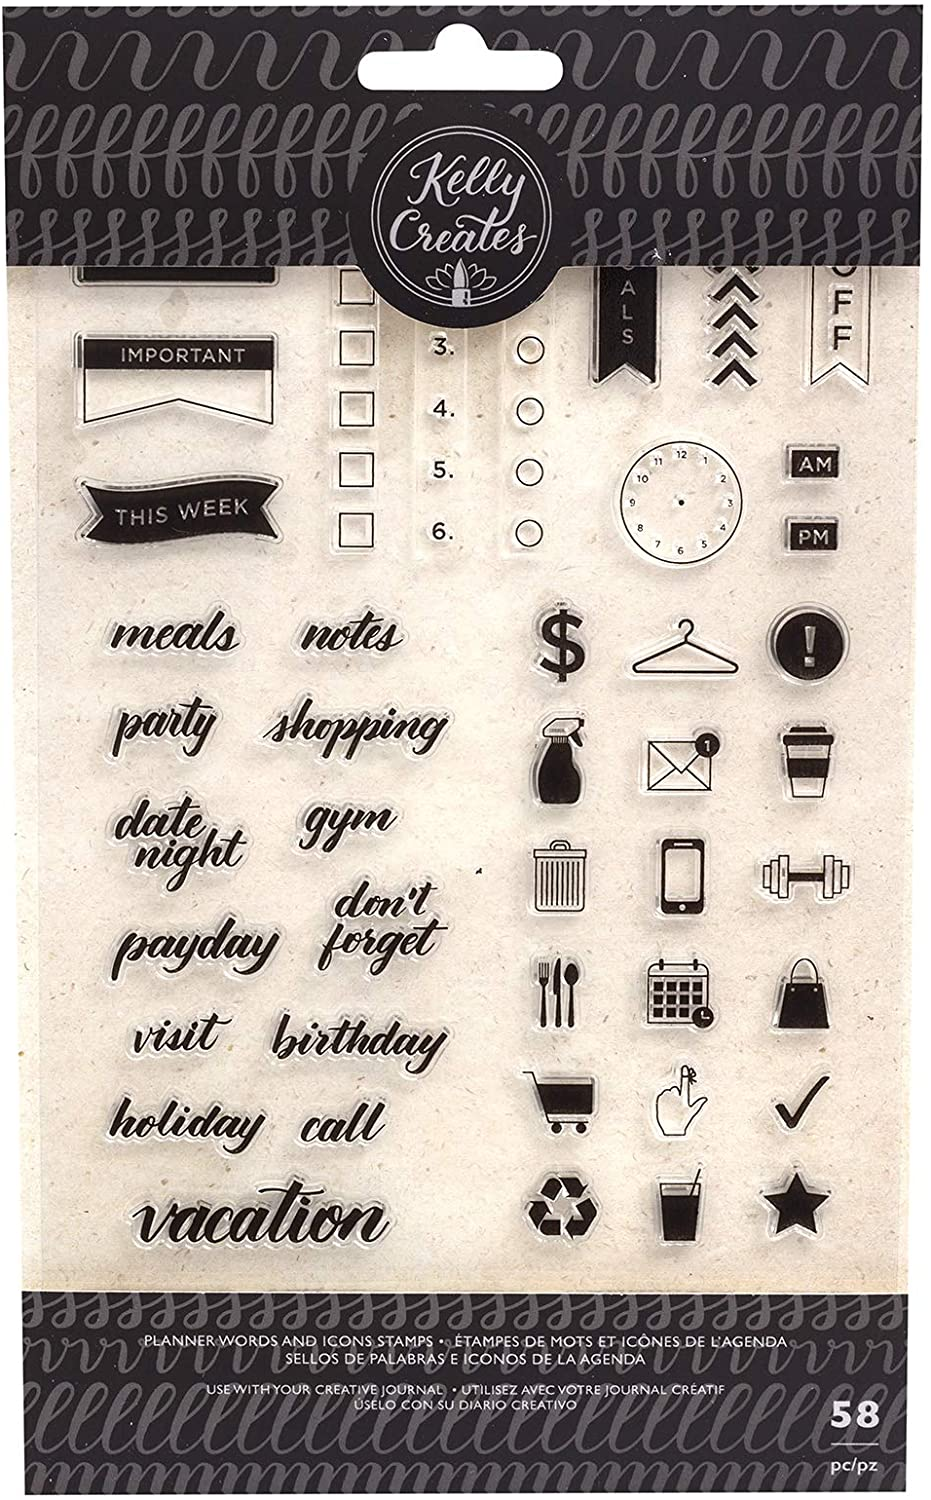 Kelly Creates Words & Icons Stamps, Multi